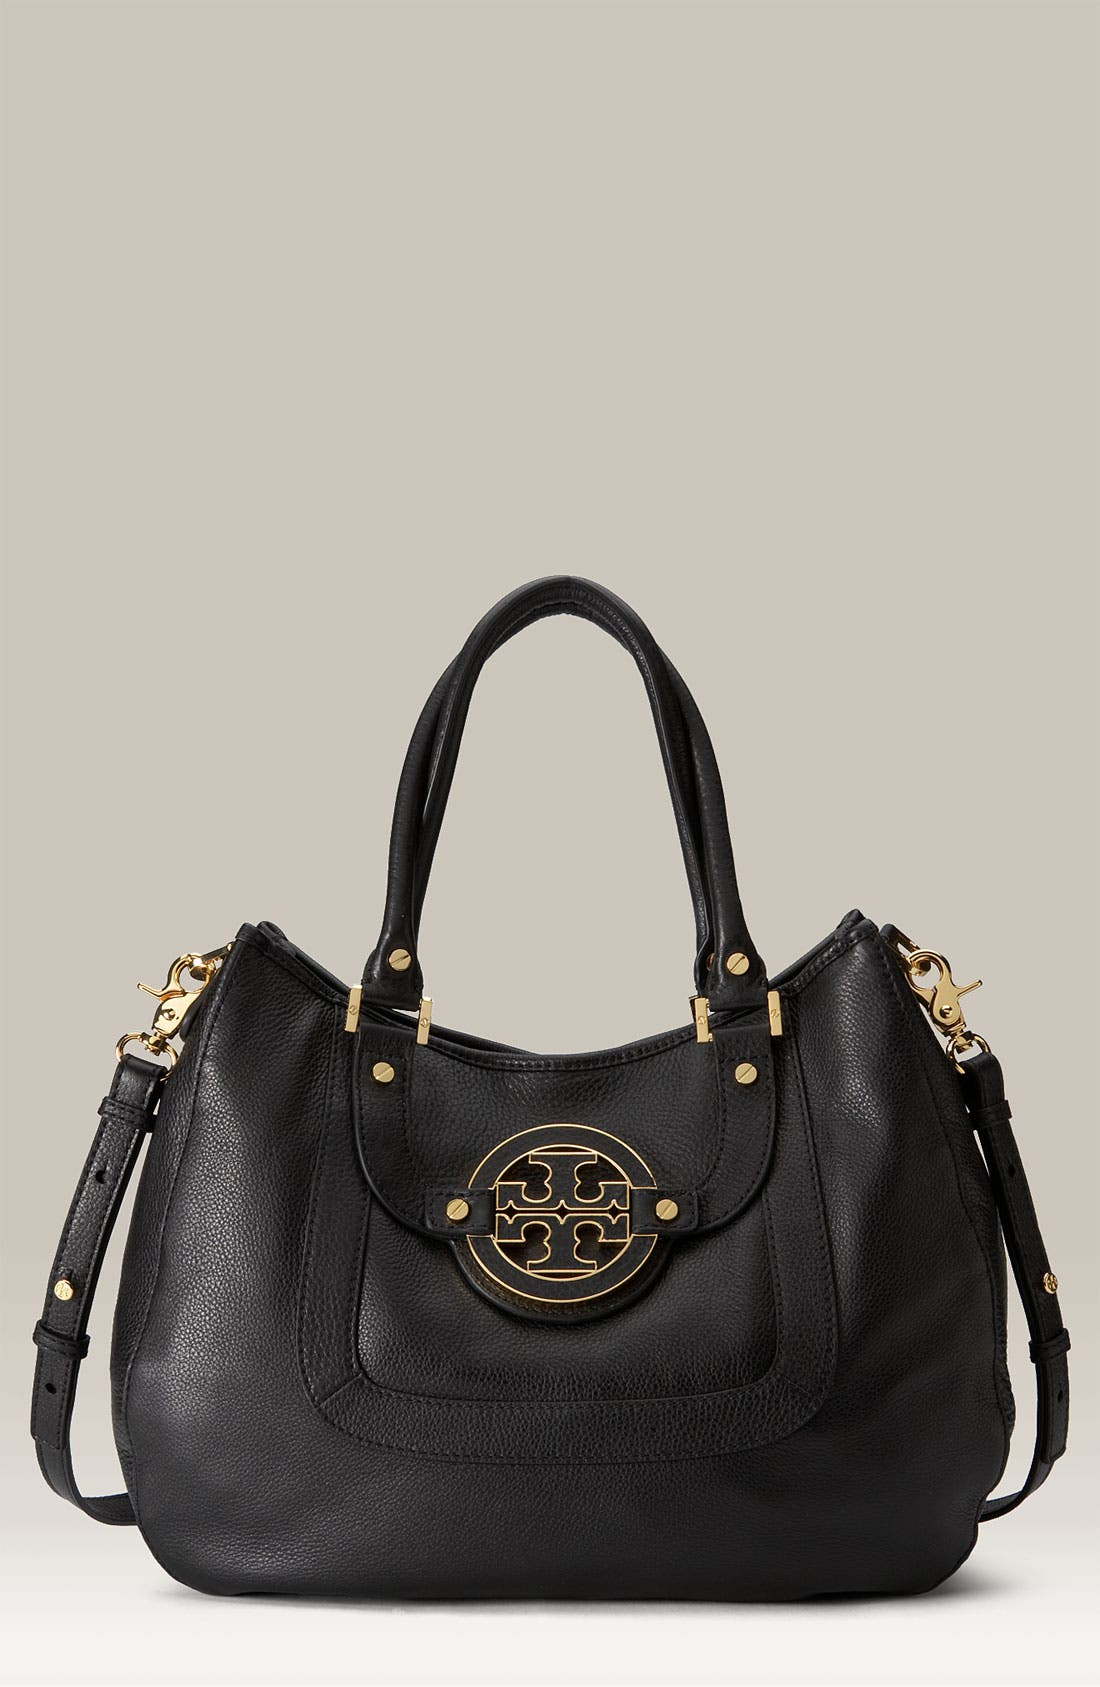 TORY BURCH, 'Amanda' Leather Hobo, Main thumbnail 1, color, 001